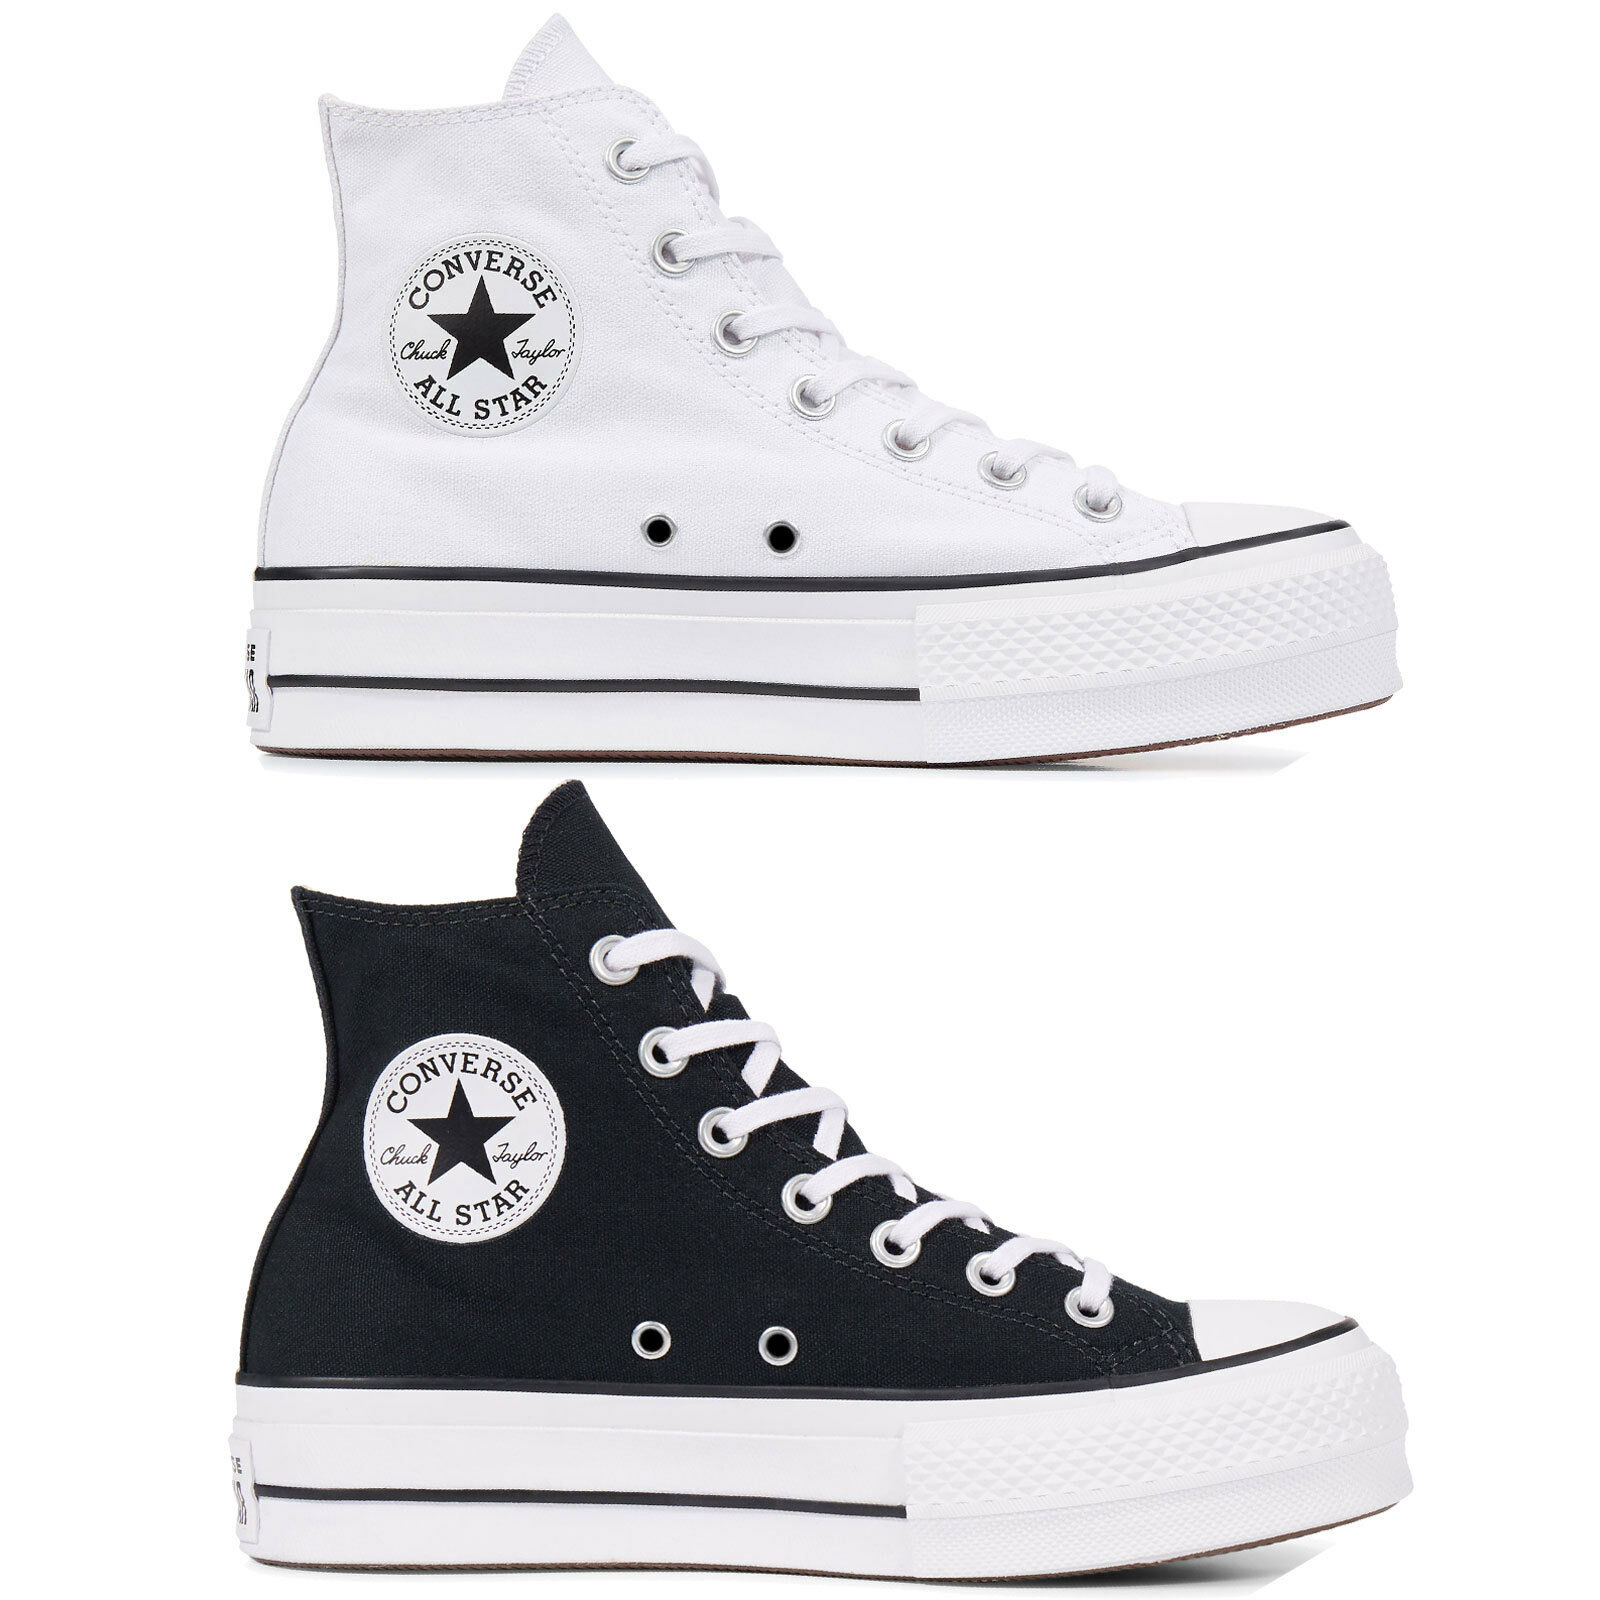 Converse chuck taylor all star hi lift textile womens shoes sport